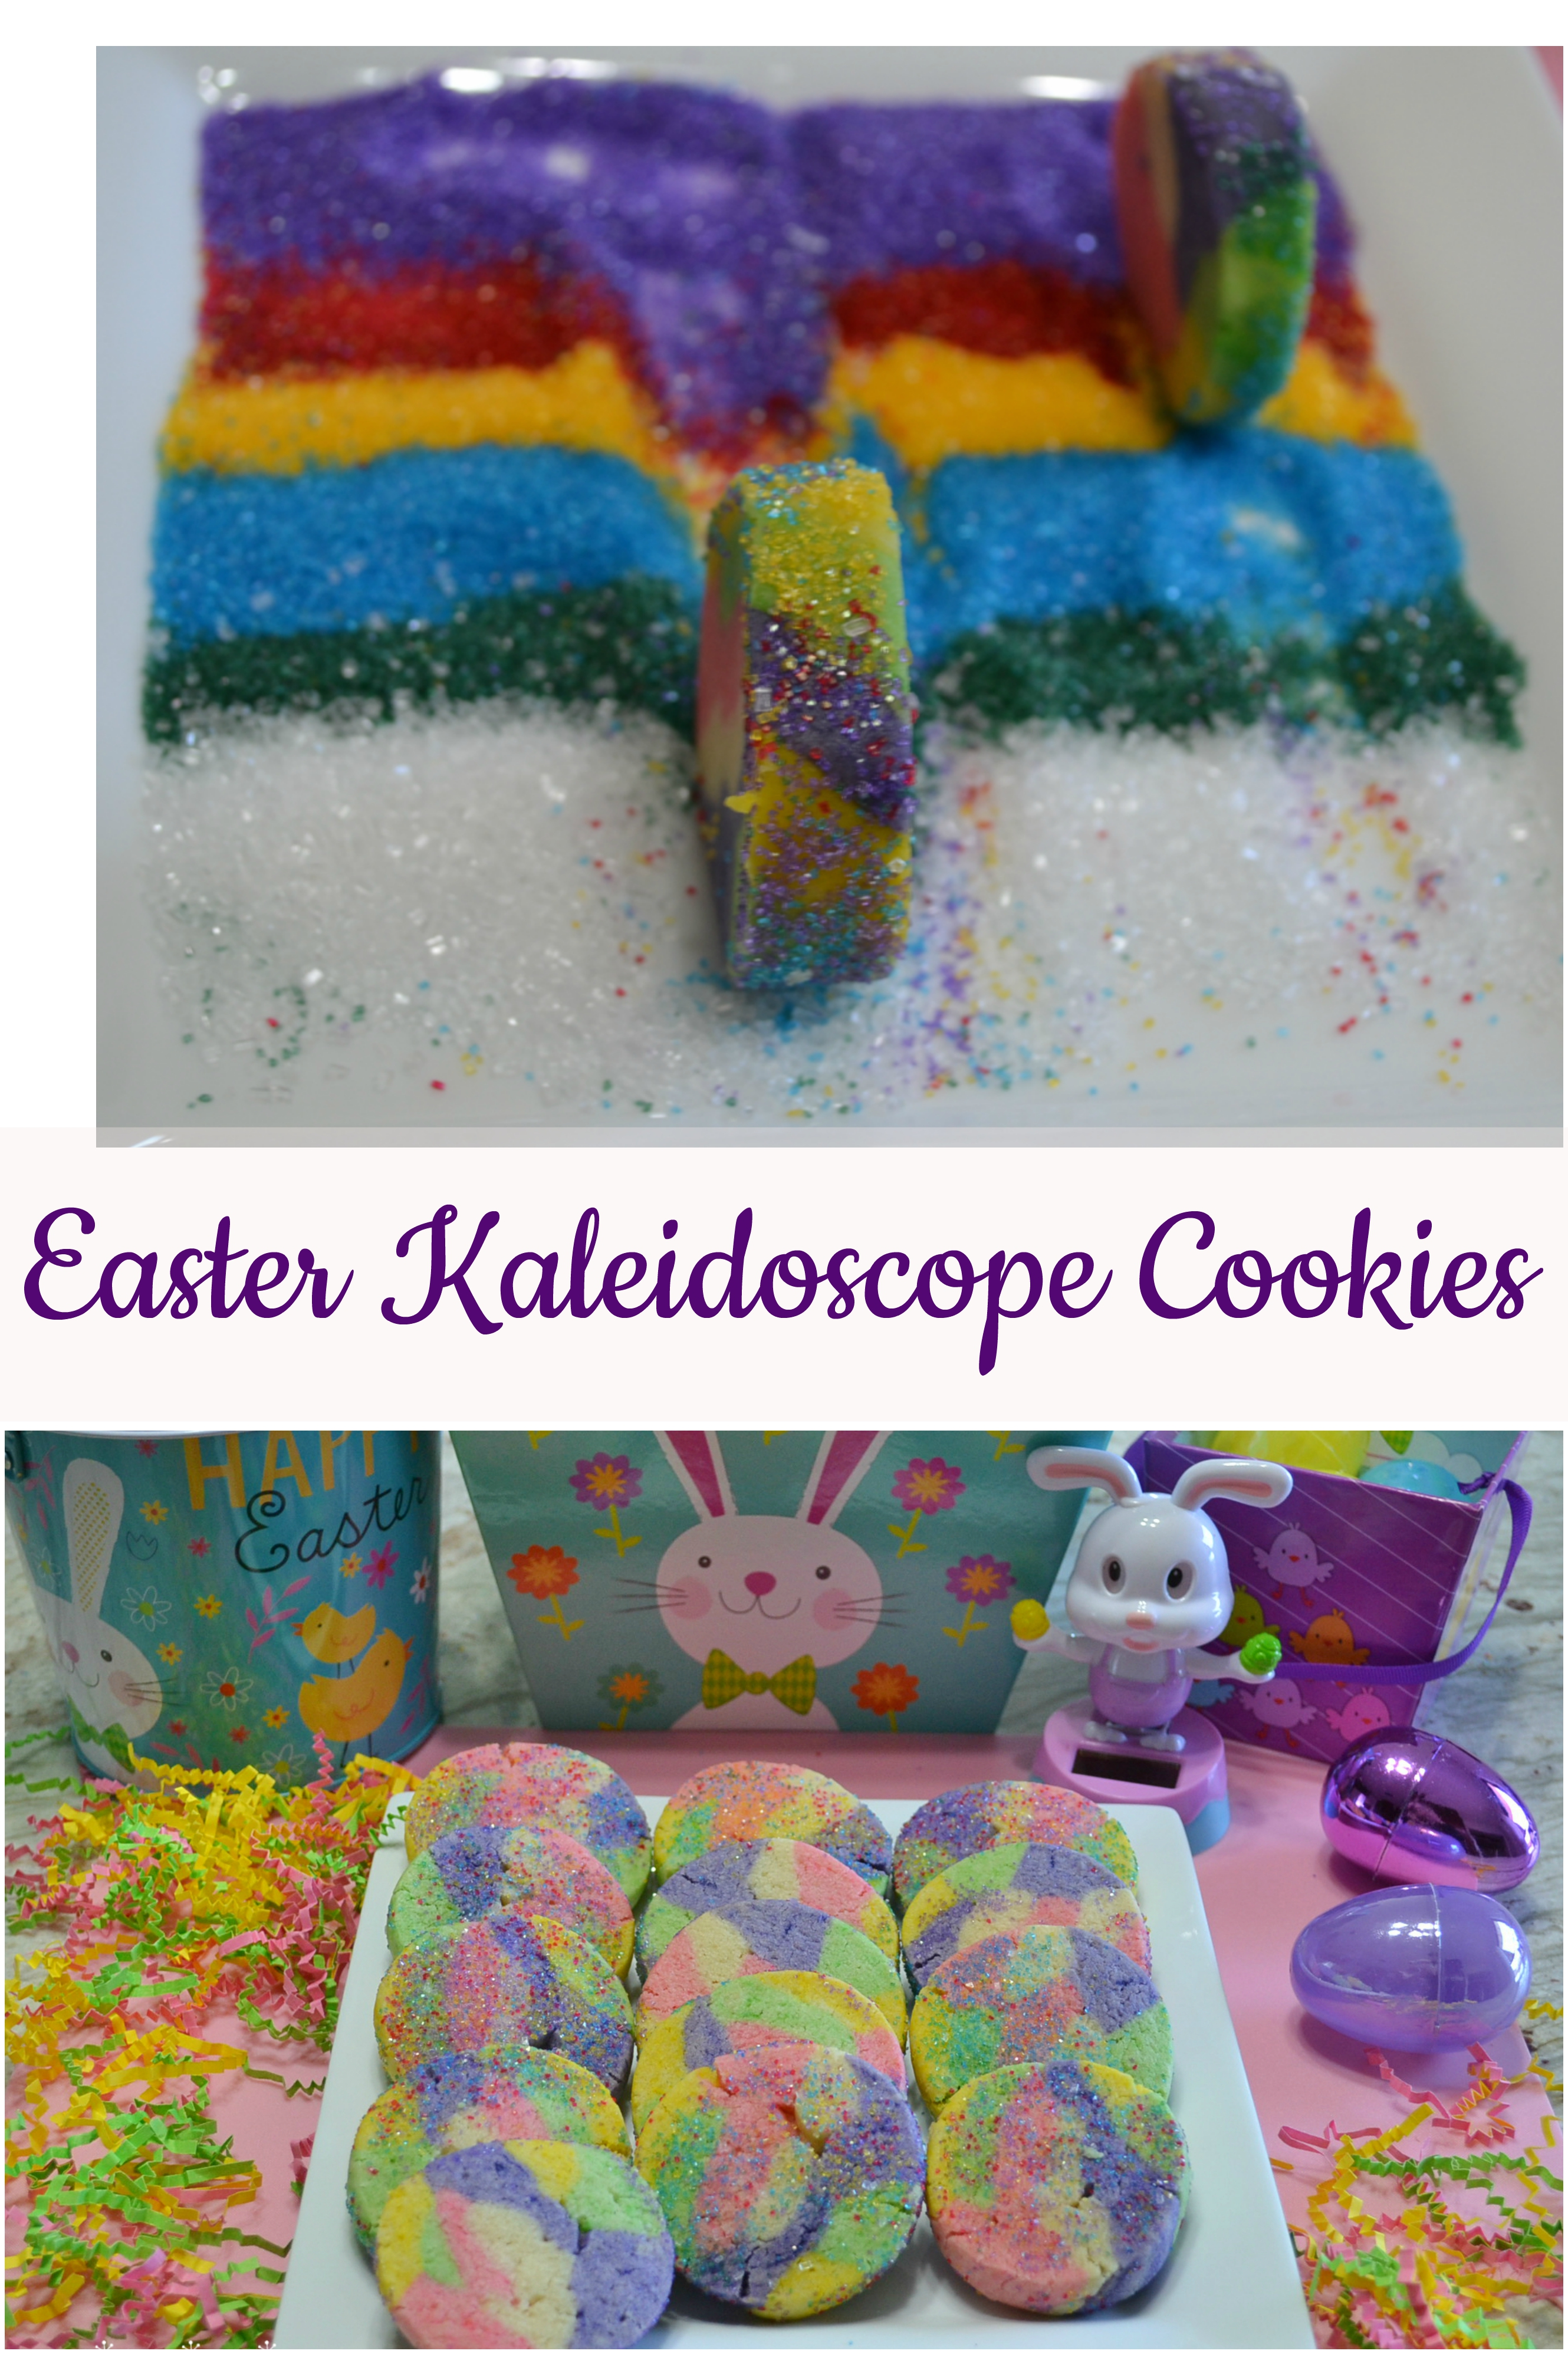 Easter Kaleidoscope Cookies are fun, colorful cookies rolled in sparkles. Perfect to make with your children or grandchildren.